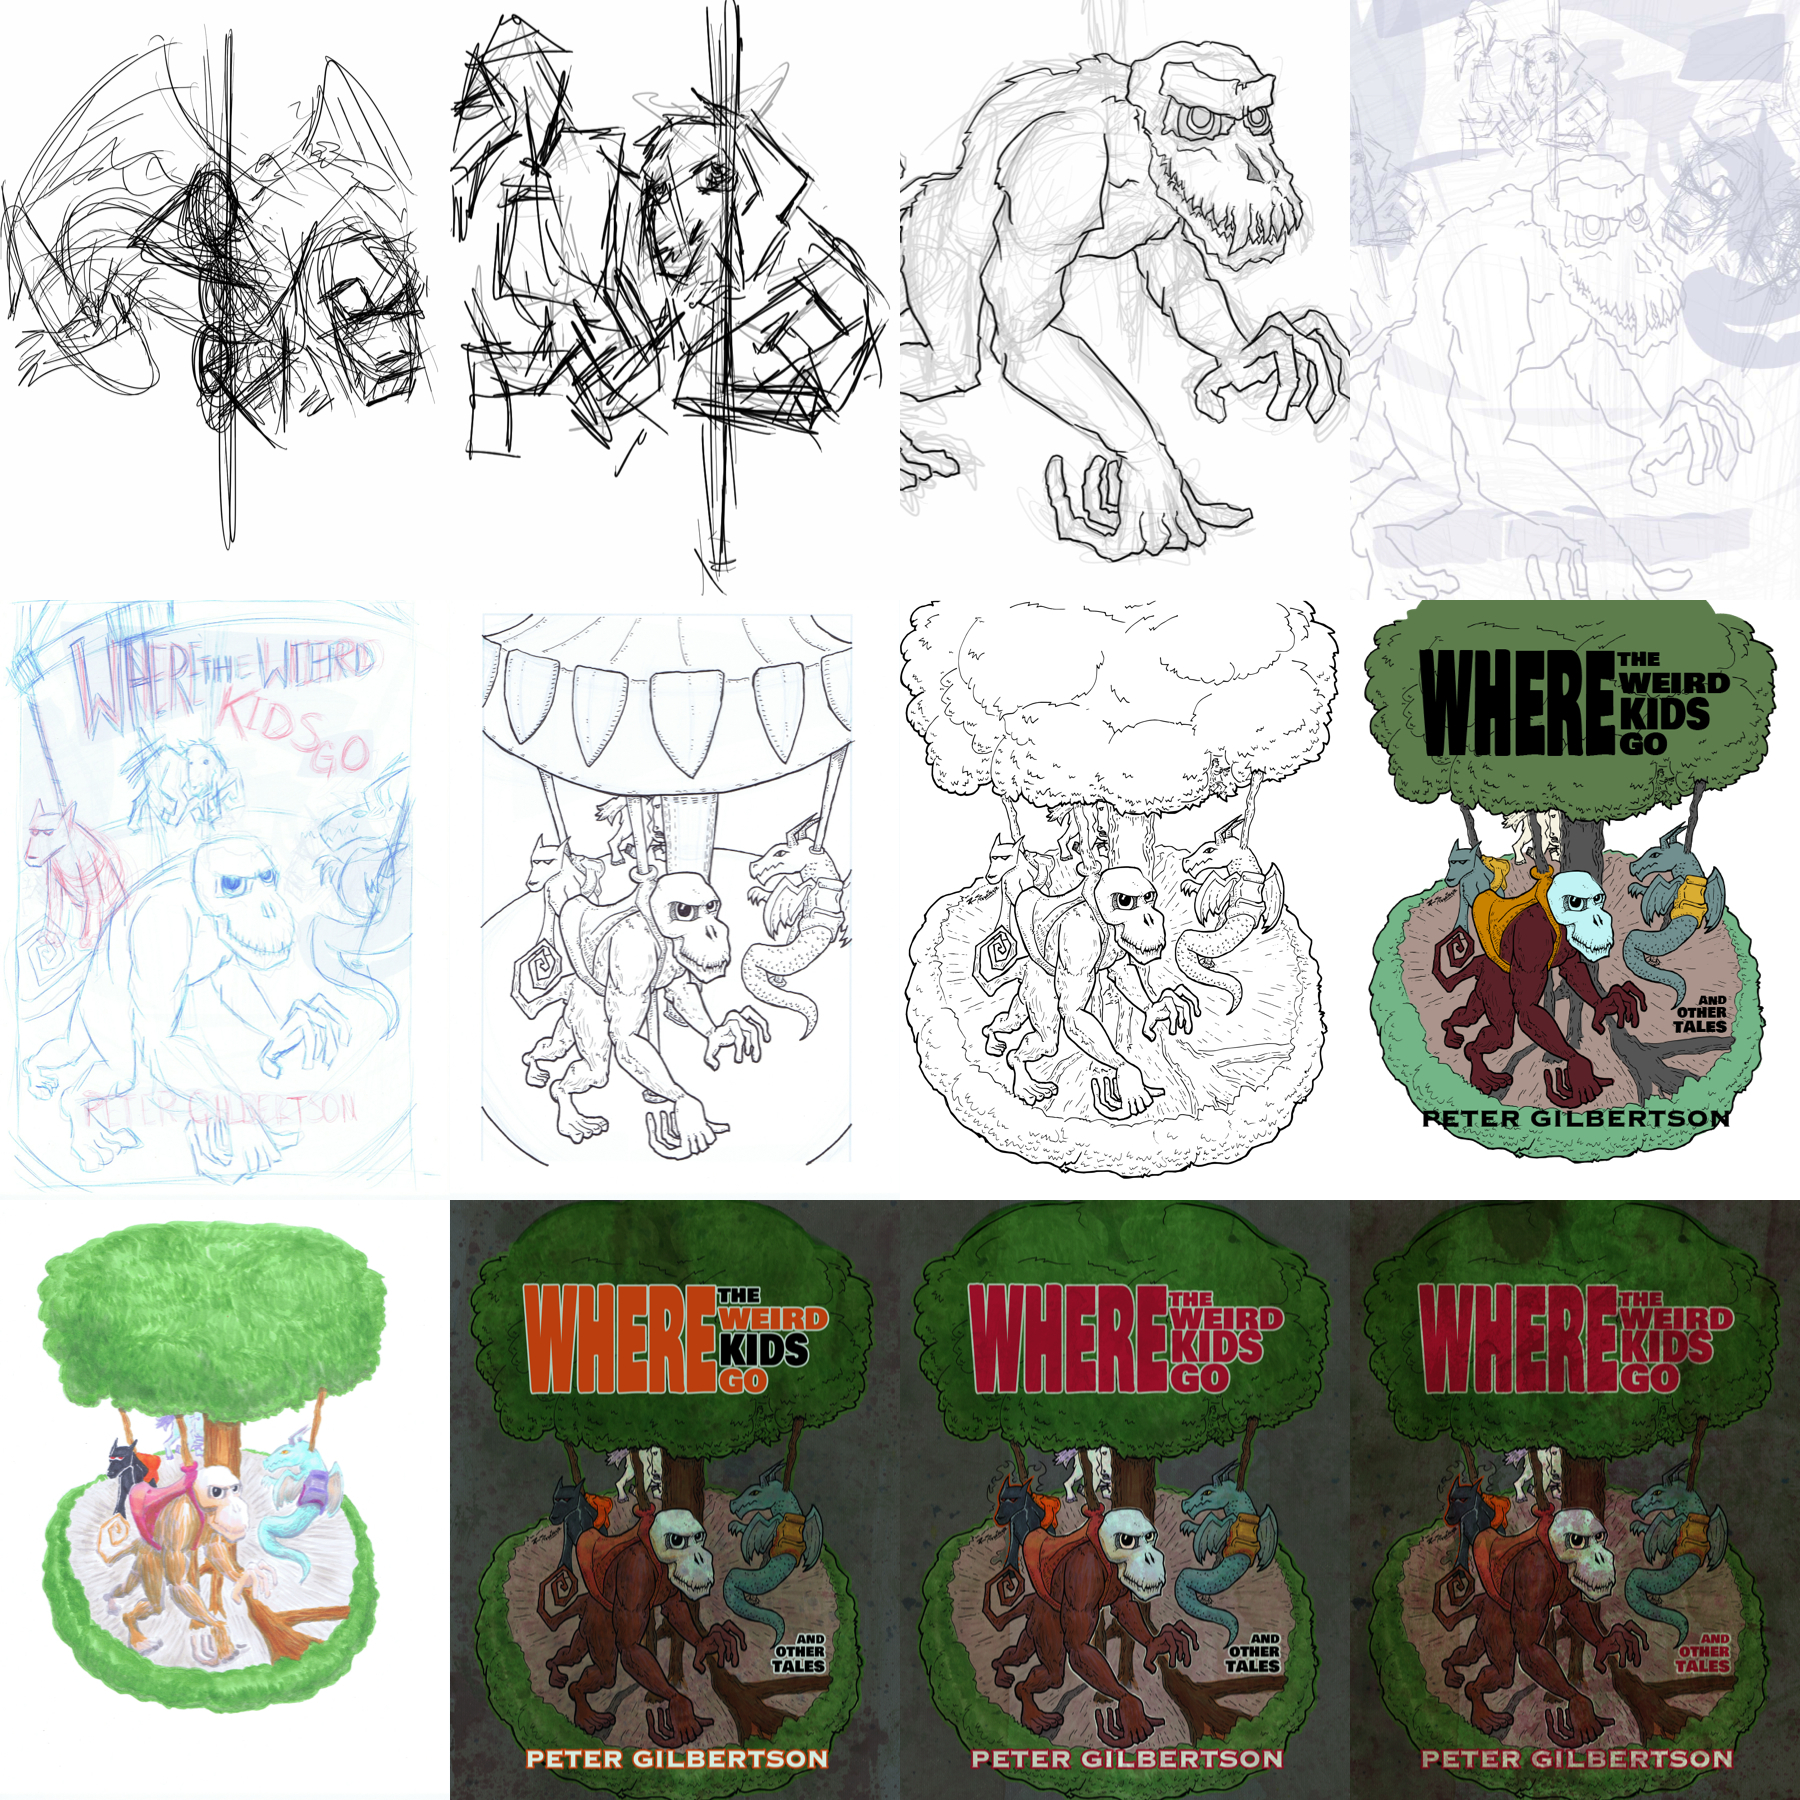 A series from early doodles of the carousel animals all the way through changes in the composition, colors and on to the final cover.